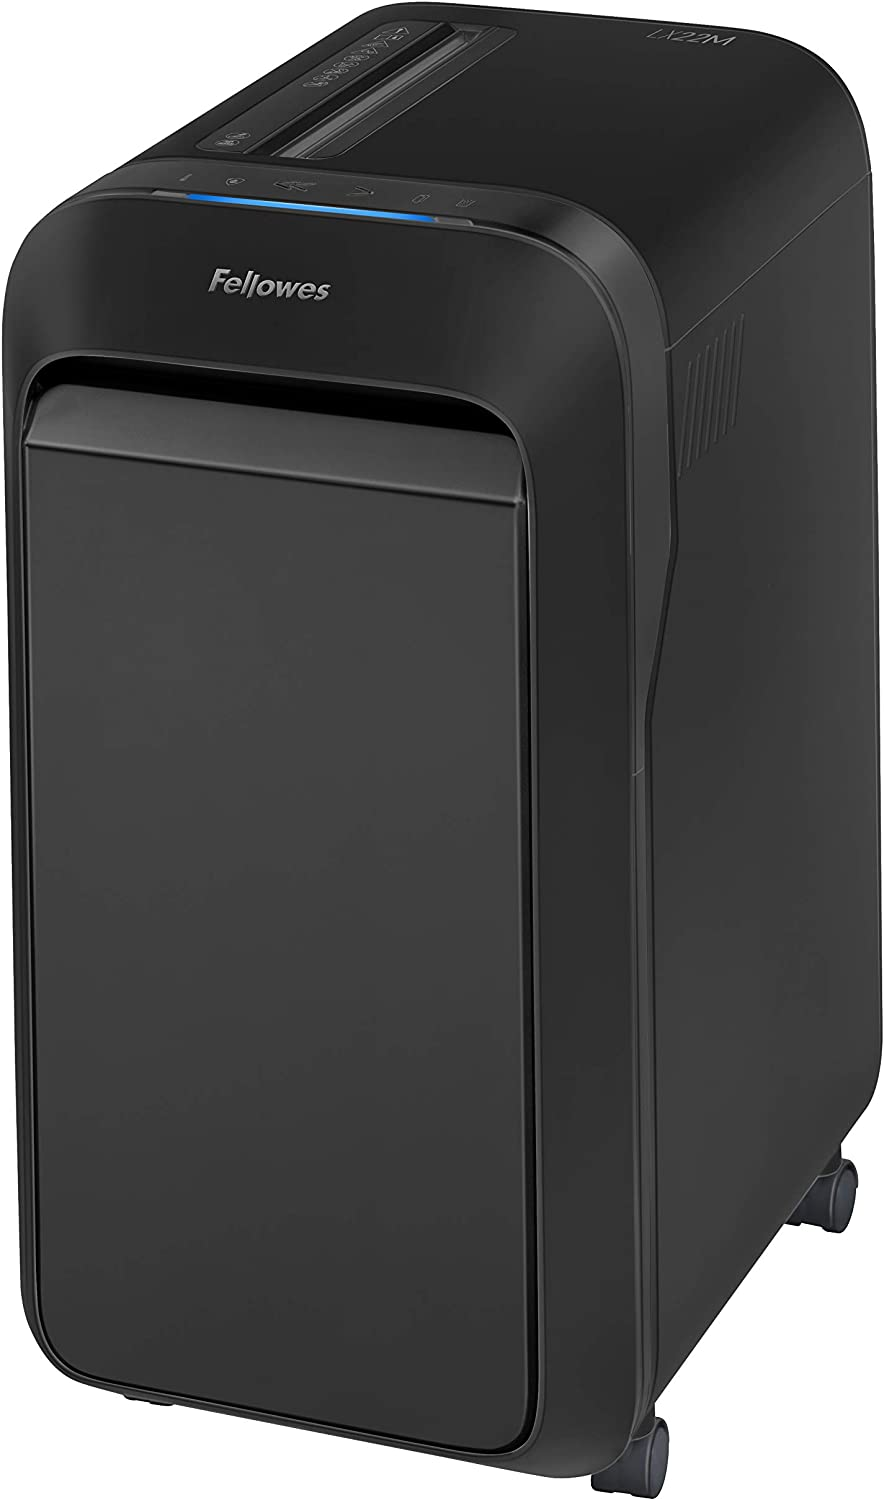 Fellowes LX22M Powershred Micro Cut 20 Sheet Paper Shredder (Black) (5263501)